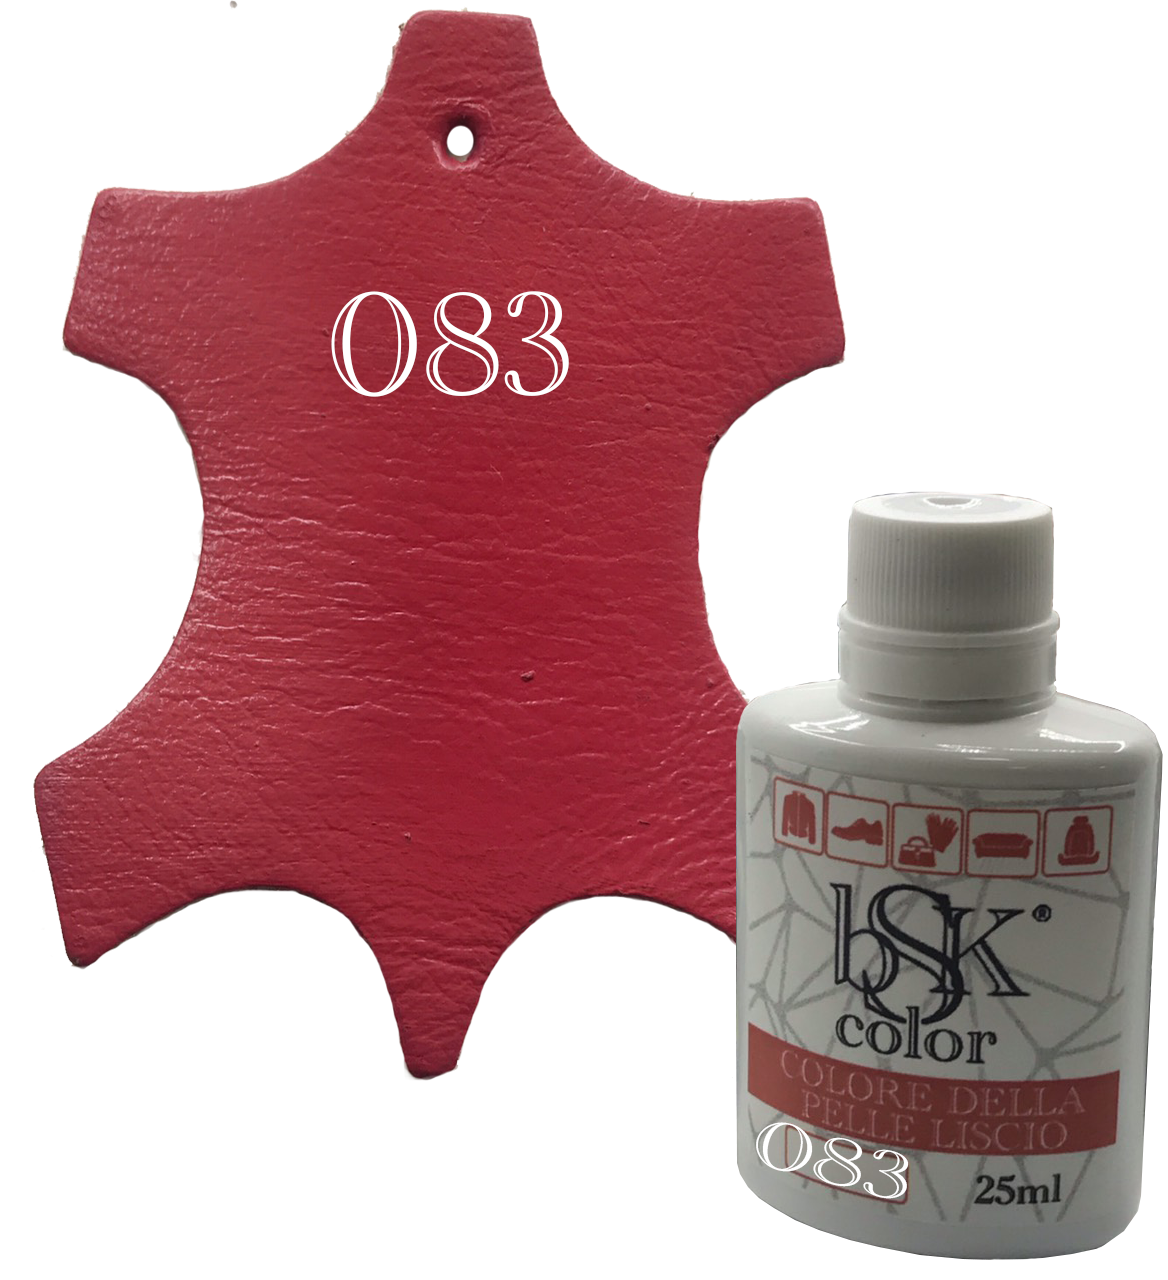 Краска для кожи bsk-color 25ml , цв. красная малина №083